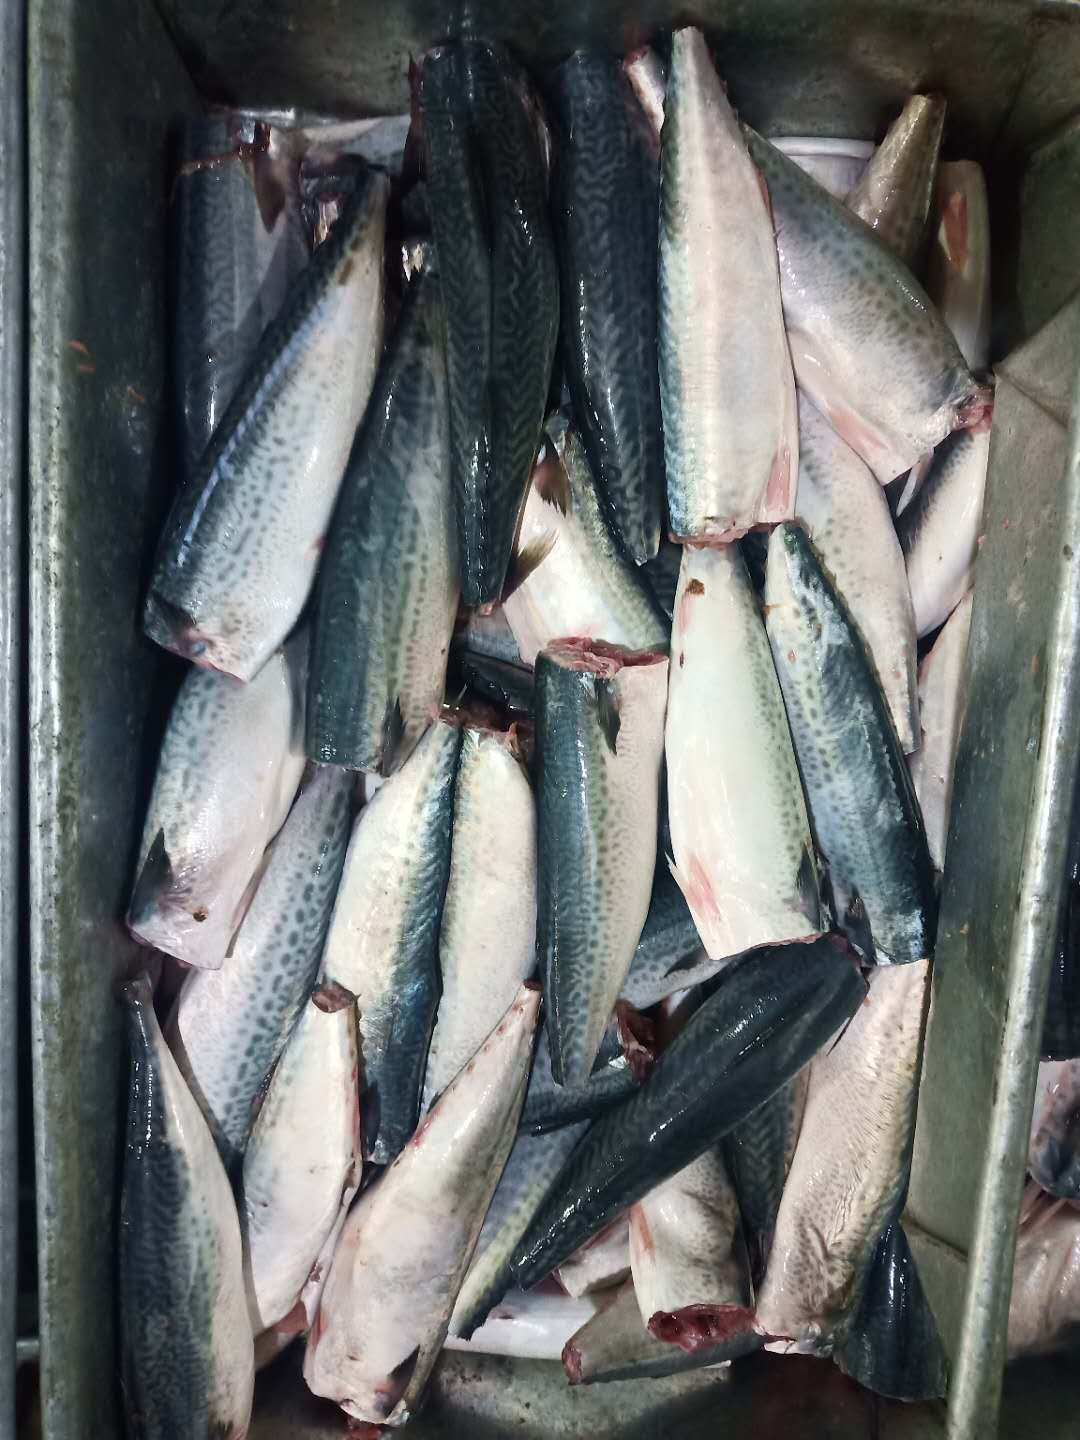 Frozen Pacific Mackerel HGT 150g+